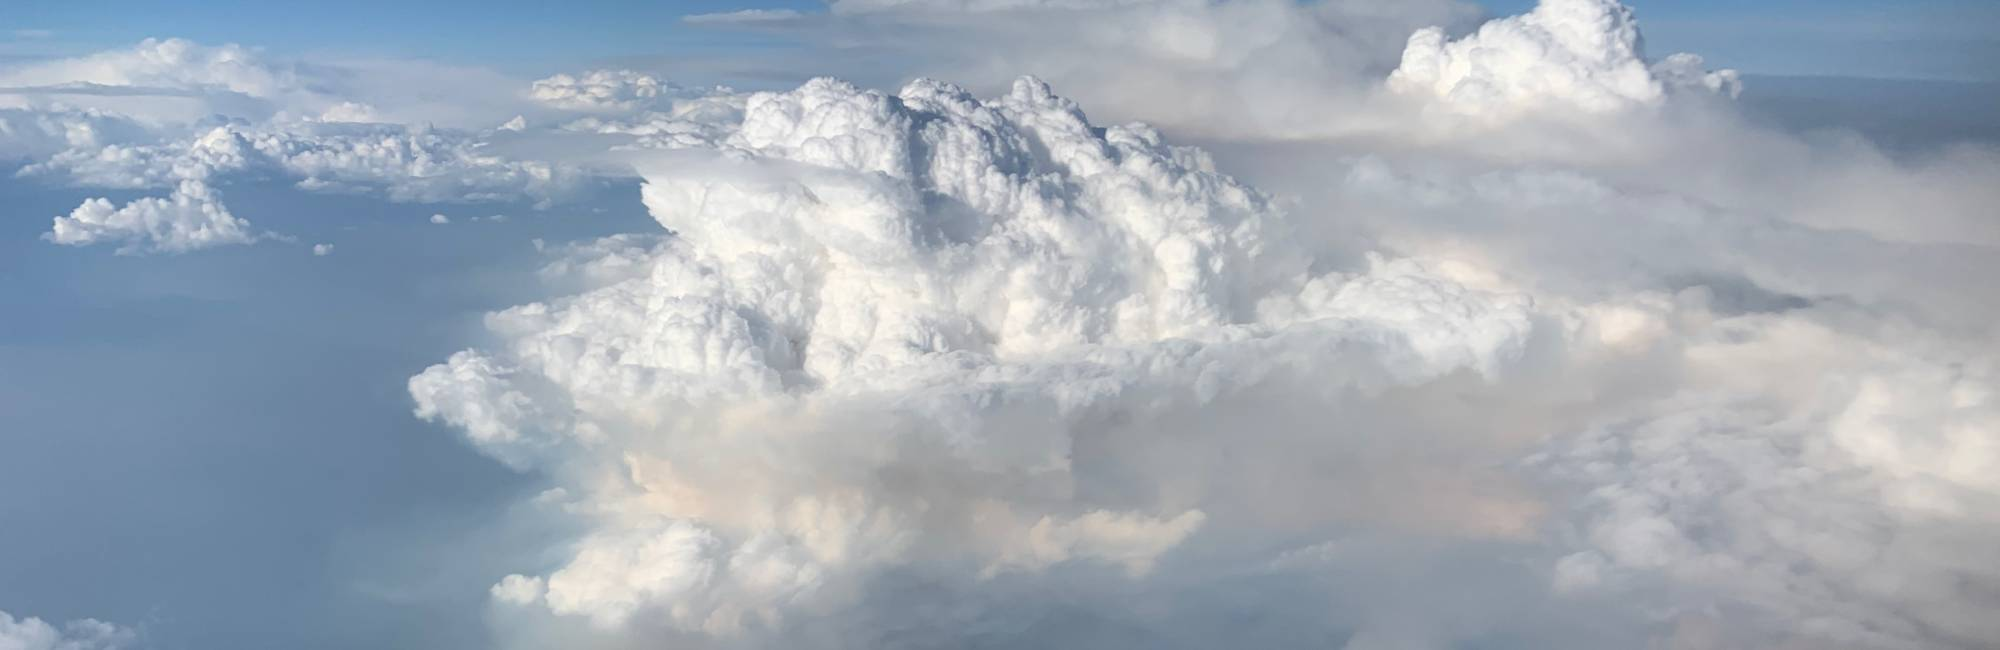 Photo of a pyrocumulonimbus cloud (generated by a wildfire) injecting smoke high into the atmosphere.